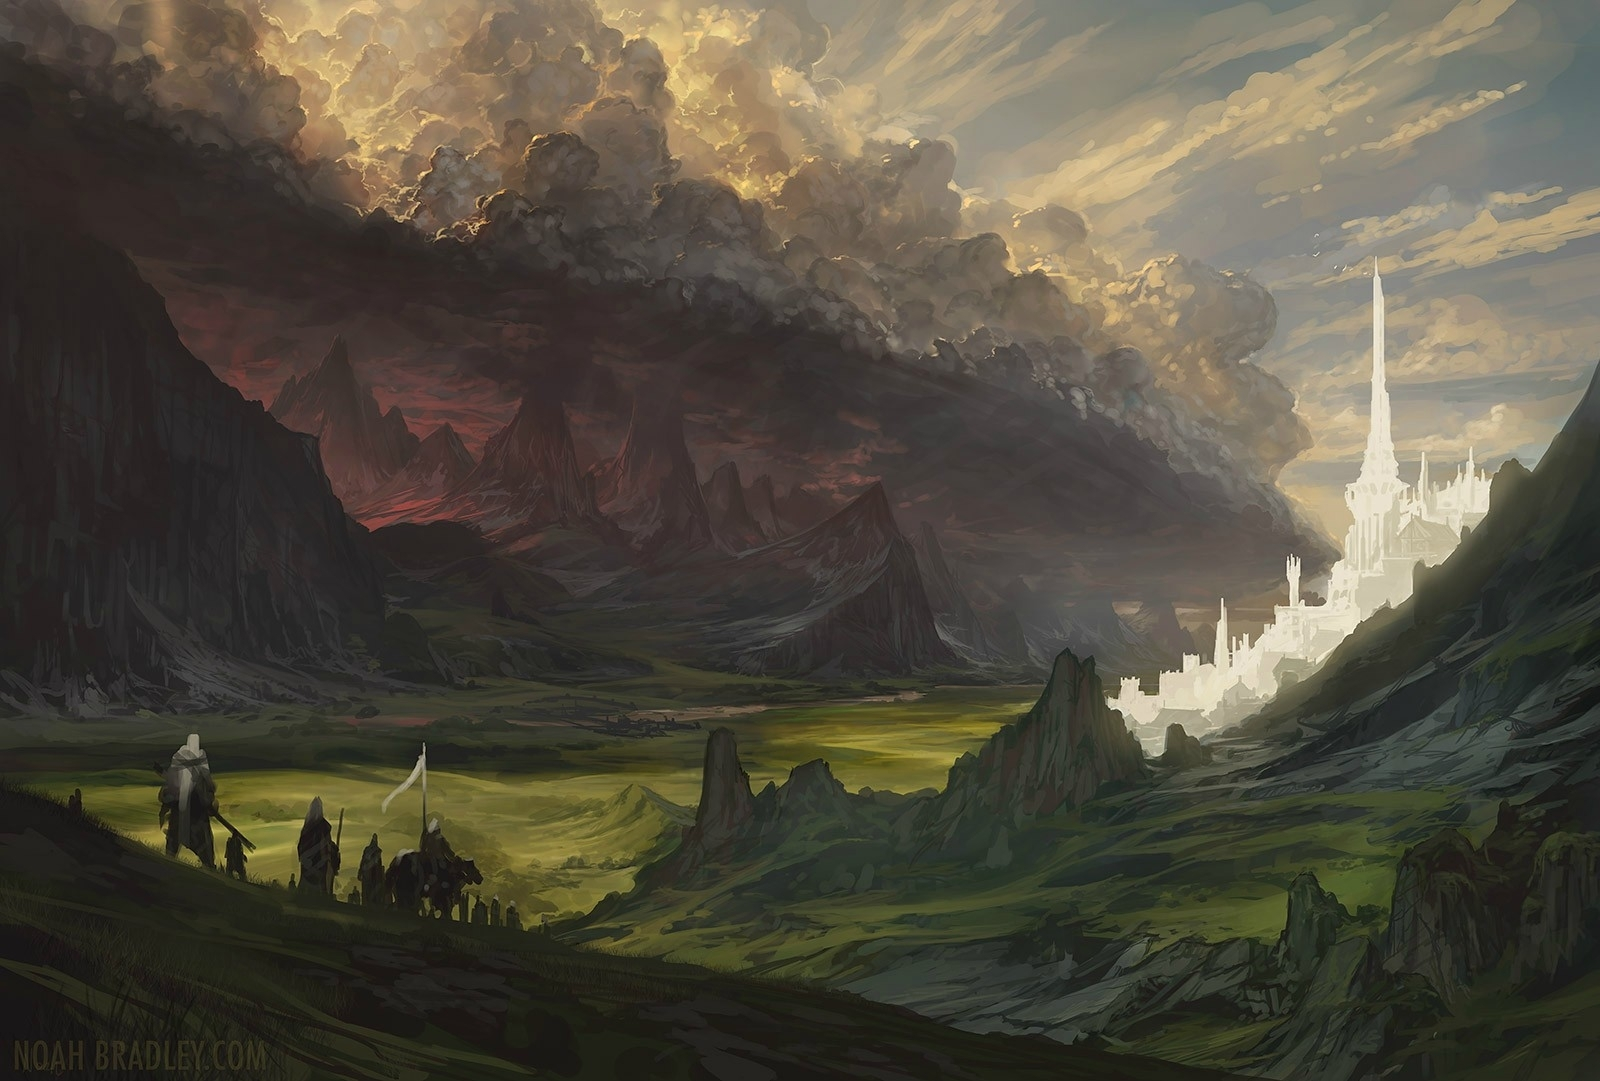 tolkien wallpapers - album on imgur | tolkien | pinterest | tolkien